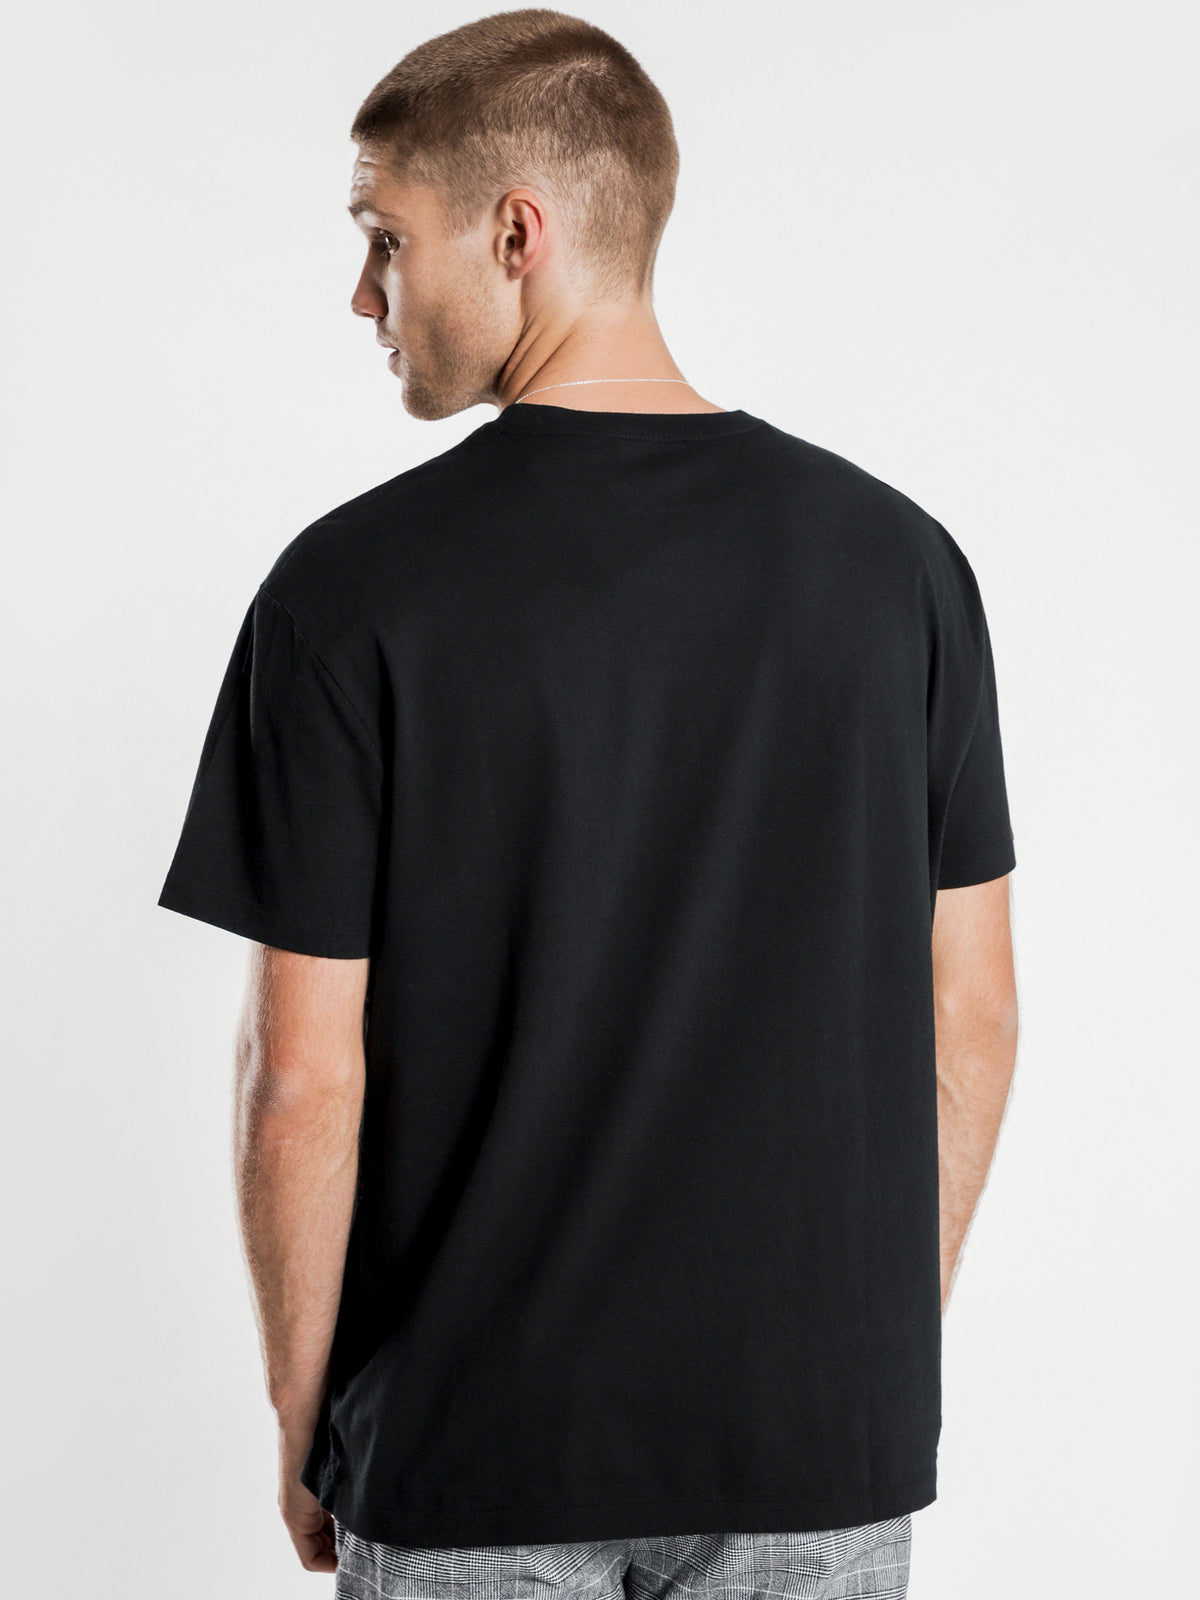 Classic Fit T-Shirt in Black